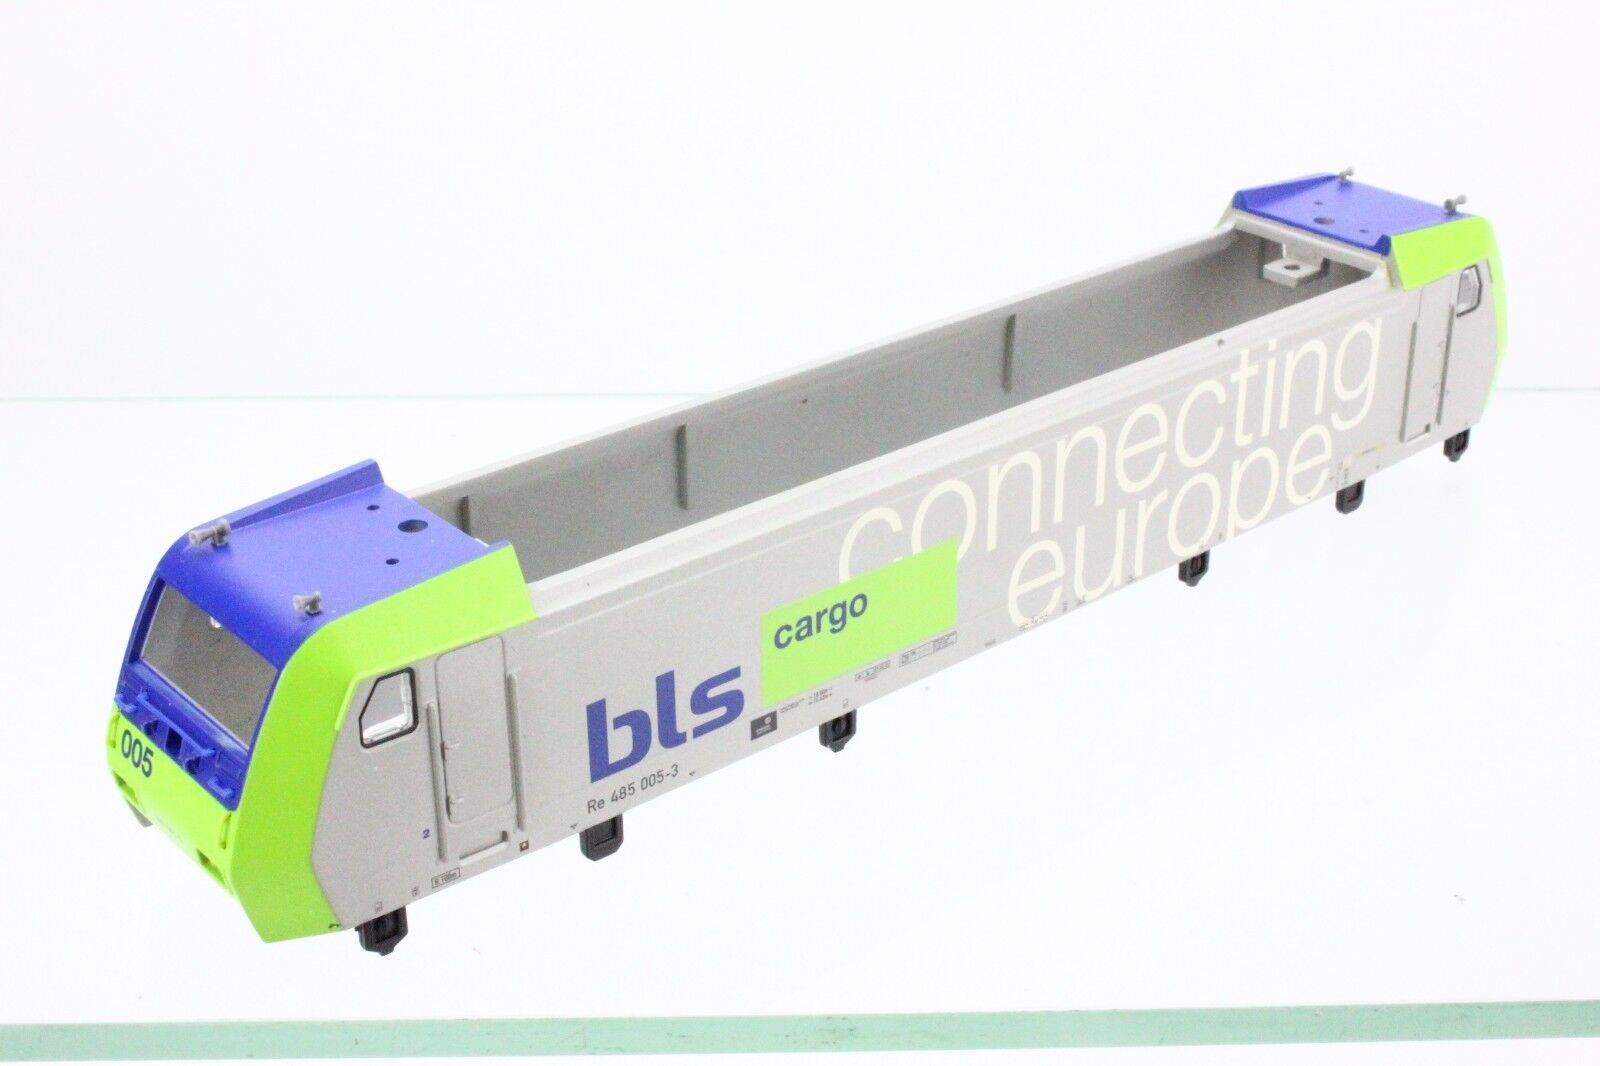 Märklin 231984 chassis for 36852 E-Locomotive Re 485 005-3 BLS Cargo connecting Europe